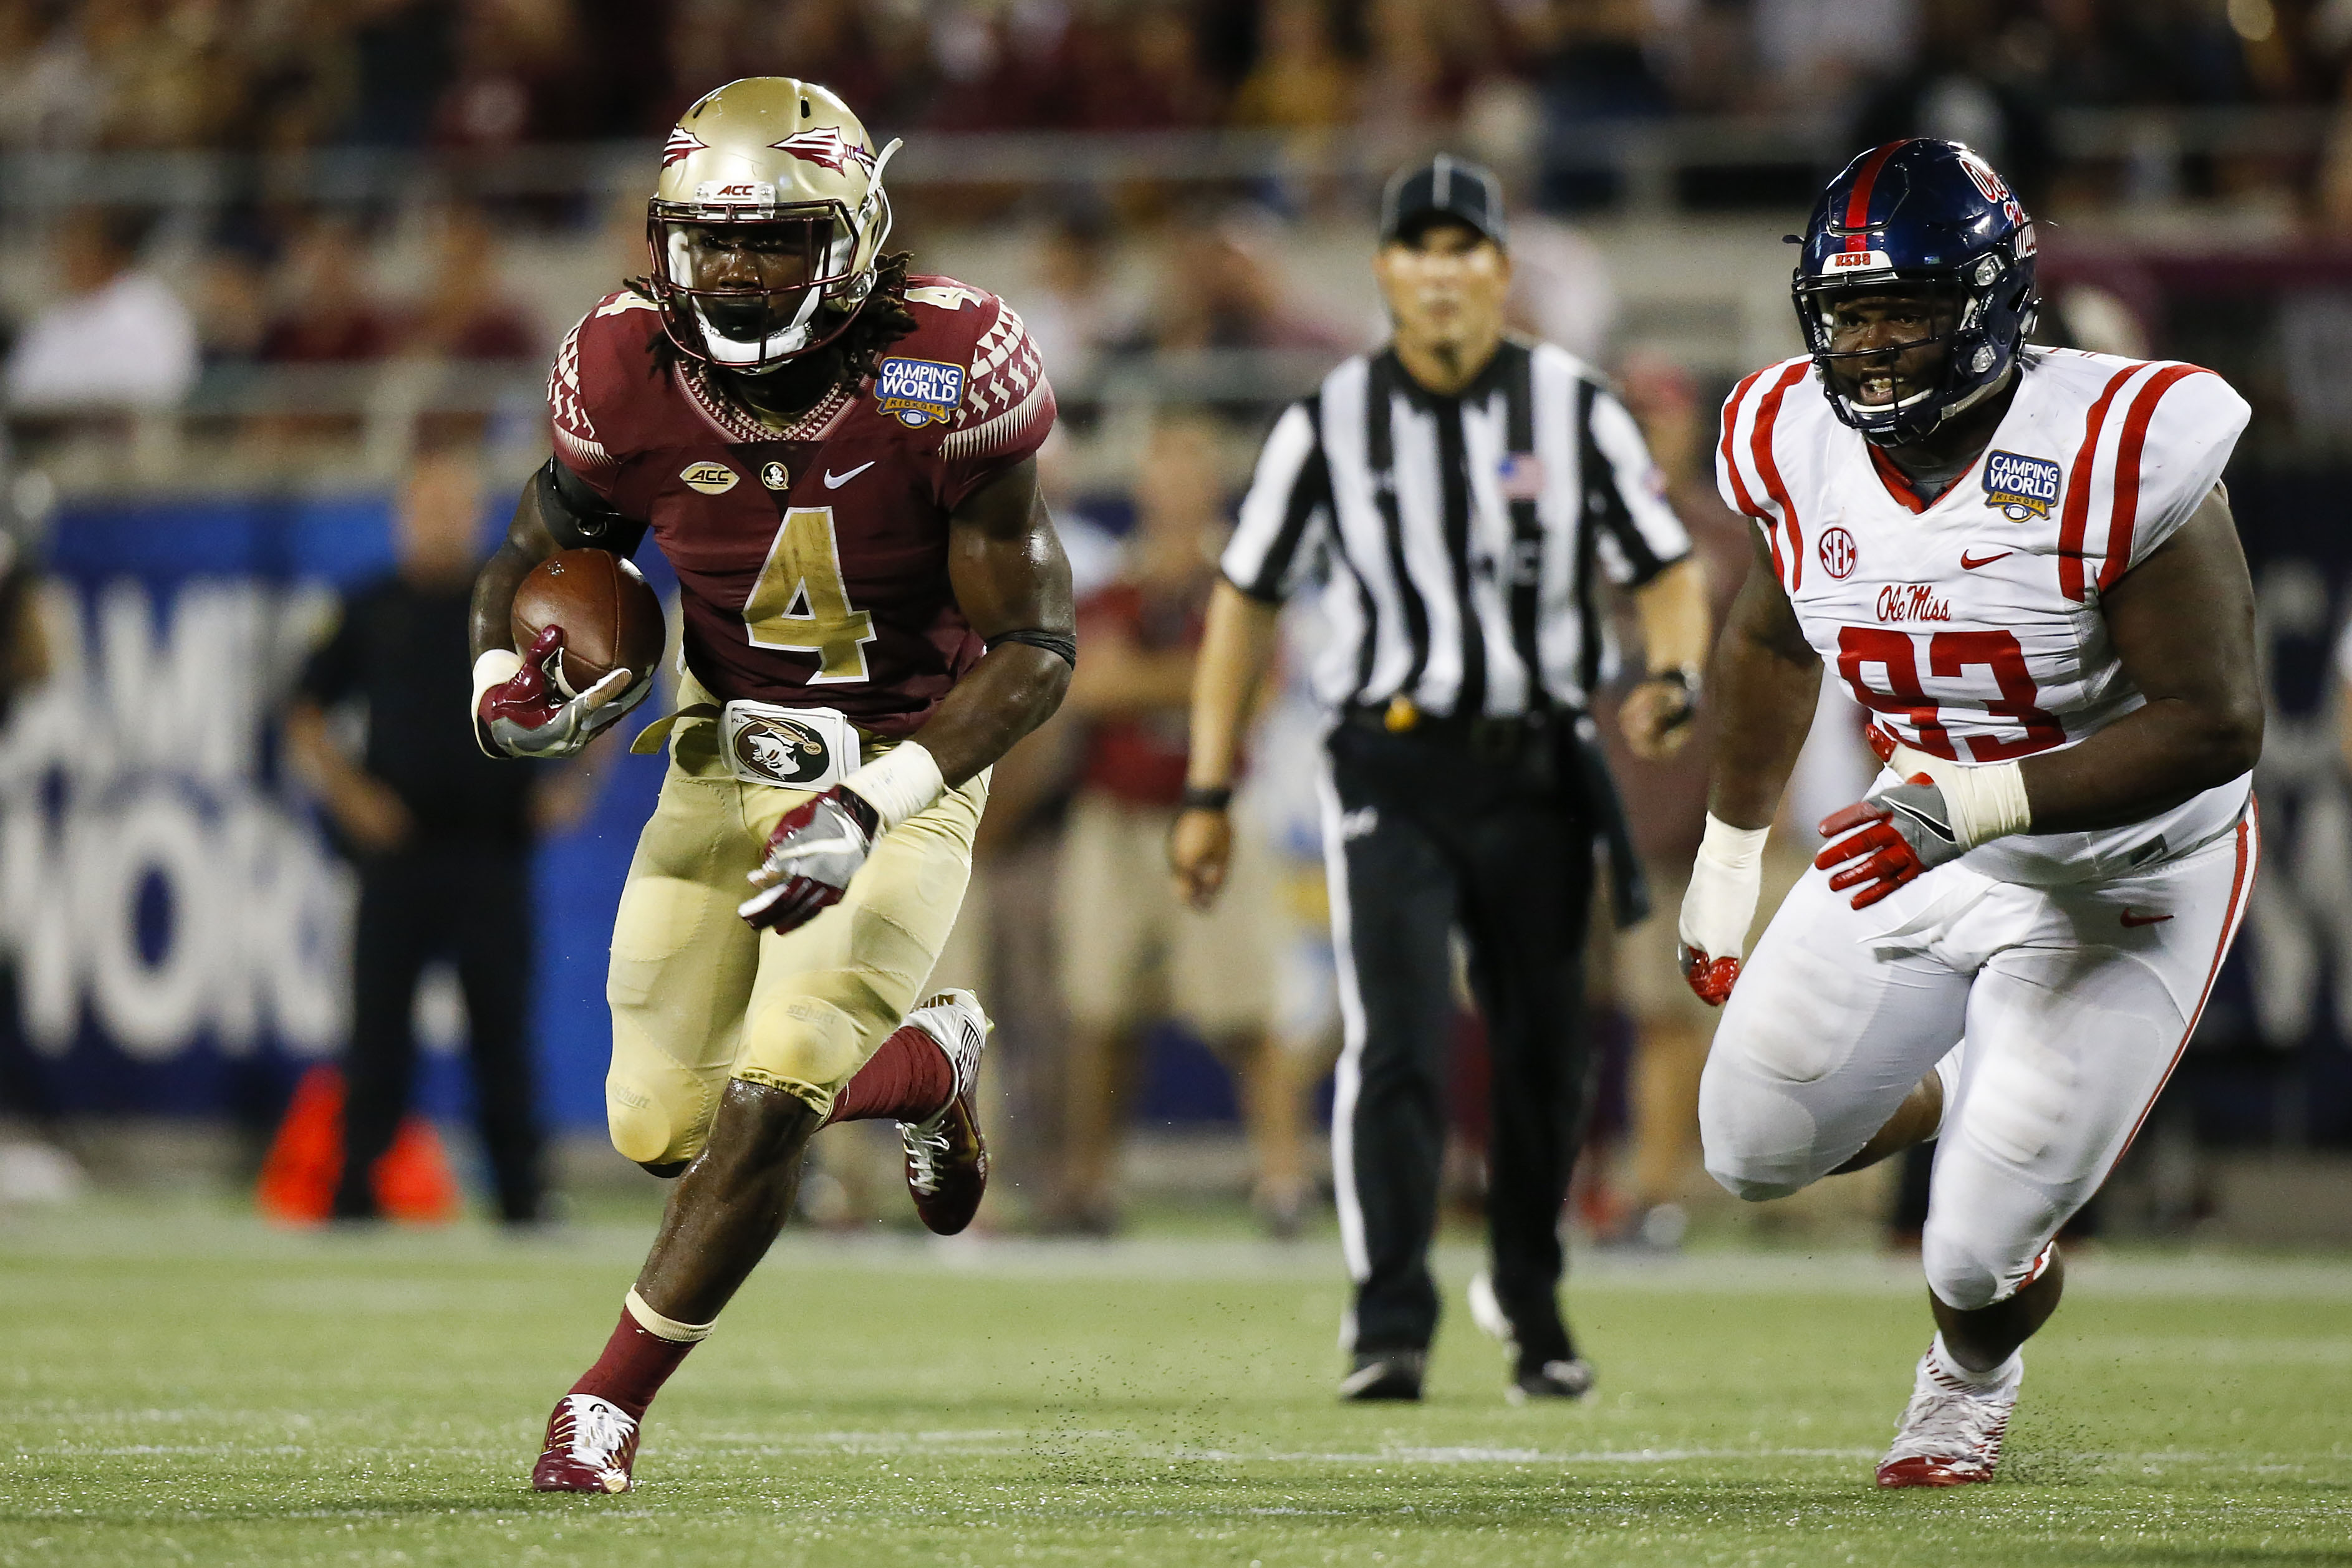 9522719-ncaa-football-mississippi-at-florida-state